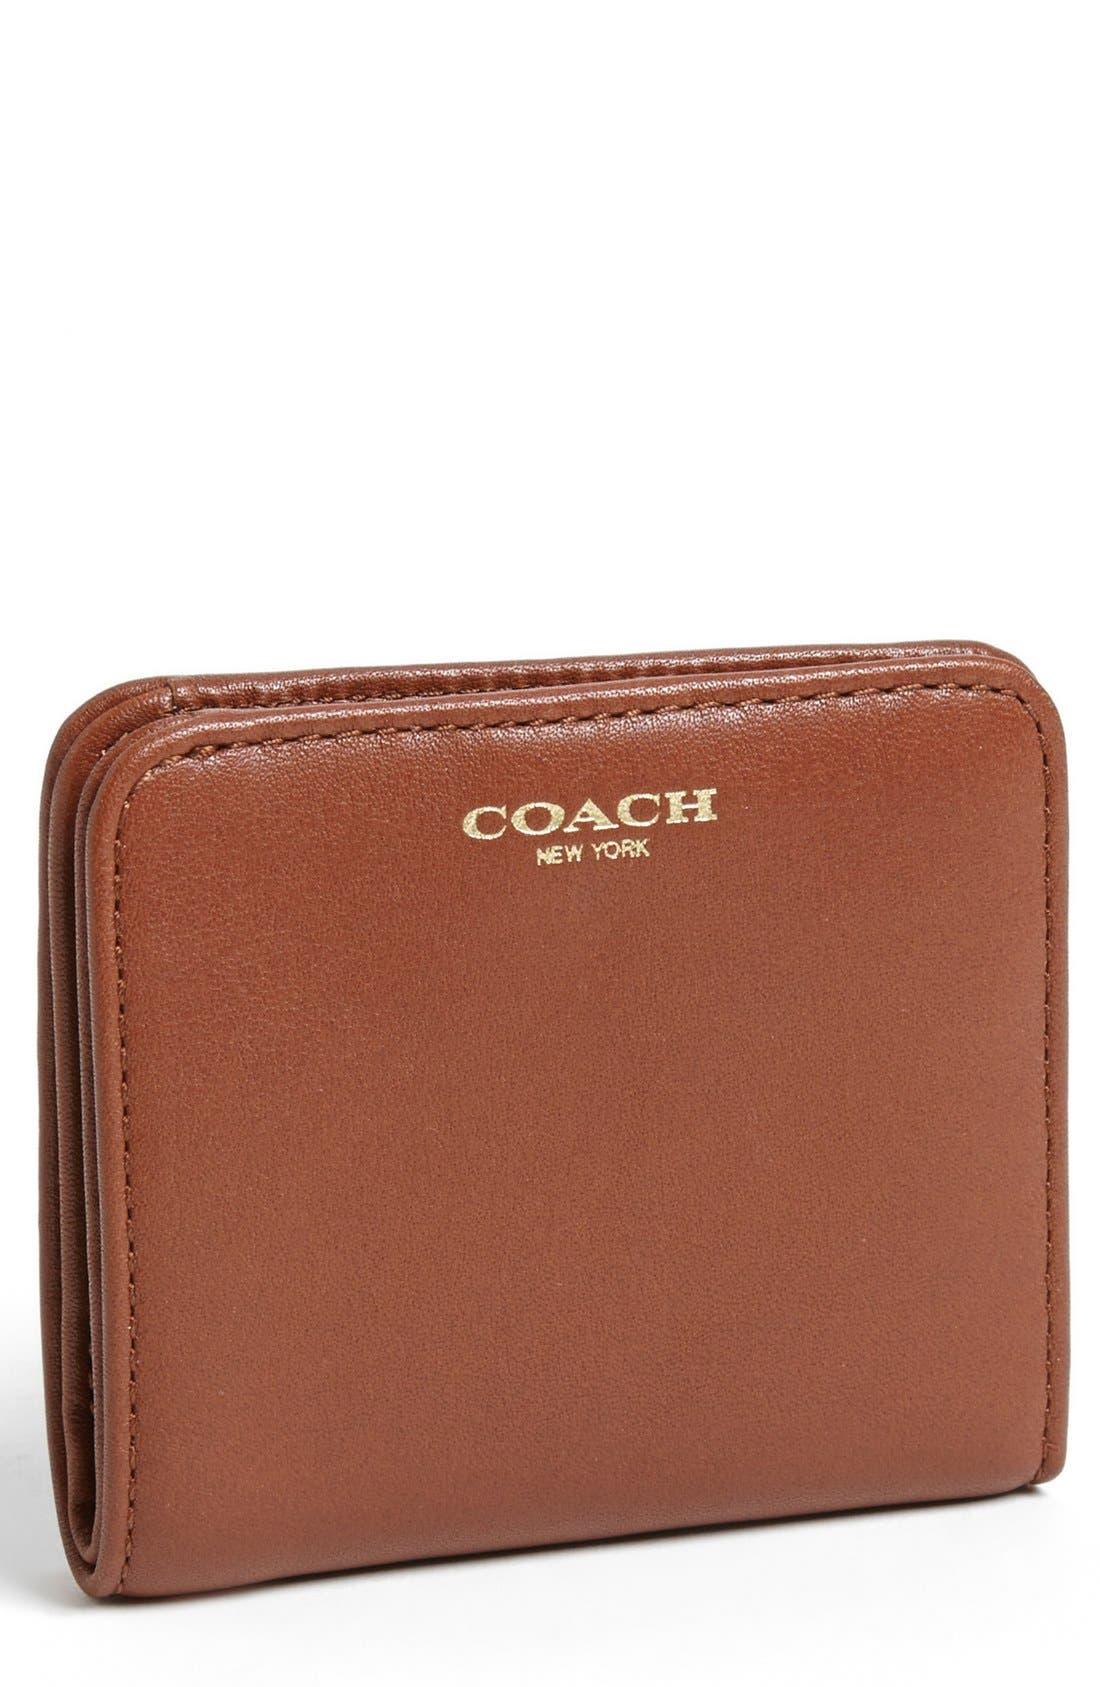 Alternate Image 1 Selected - COACH 'Legacy - Small' Leather Wallet